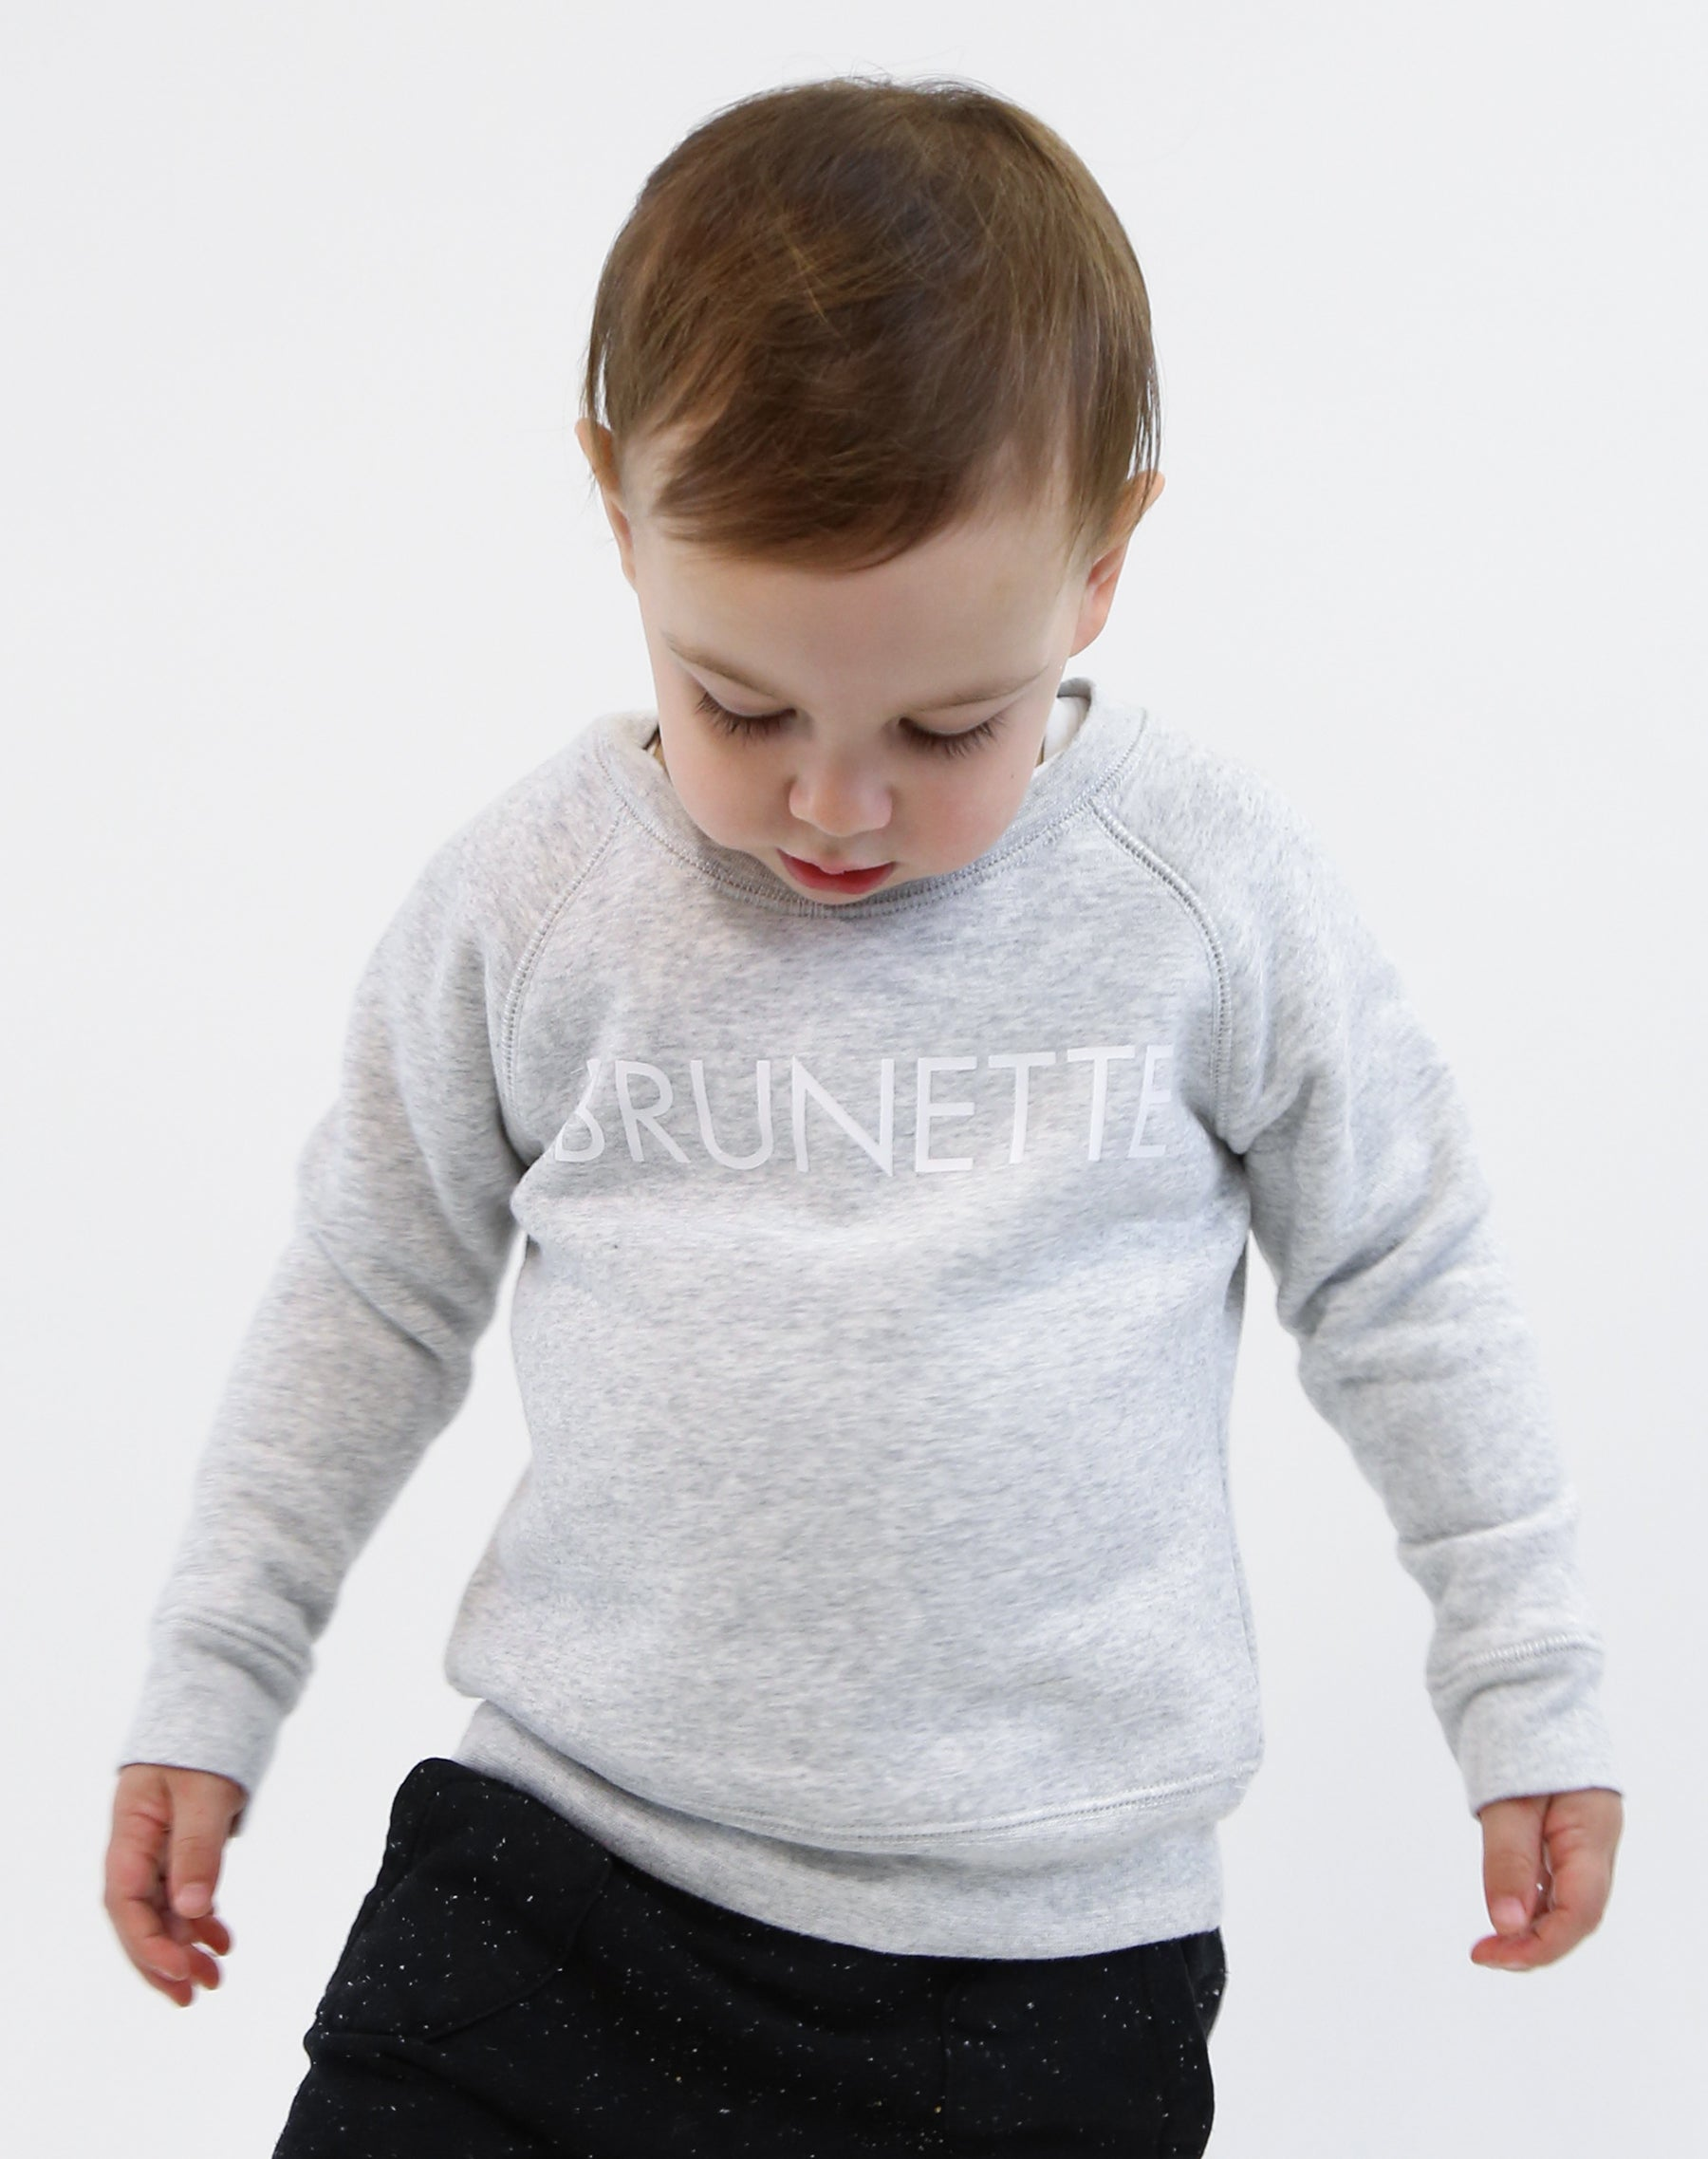 Photo of baby wearing the Brunette classic crew neck sweatshirt in pebble grey by Brunette the Label.